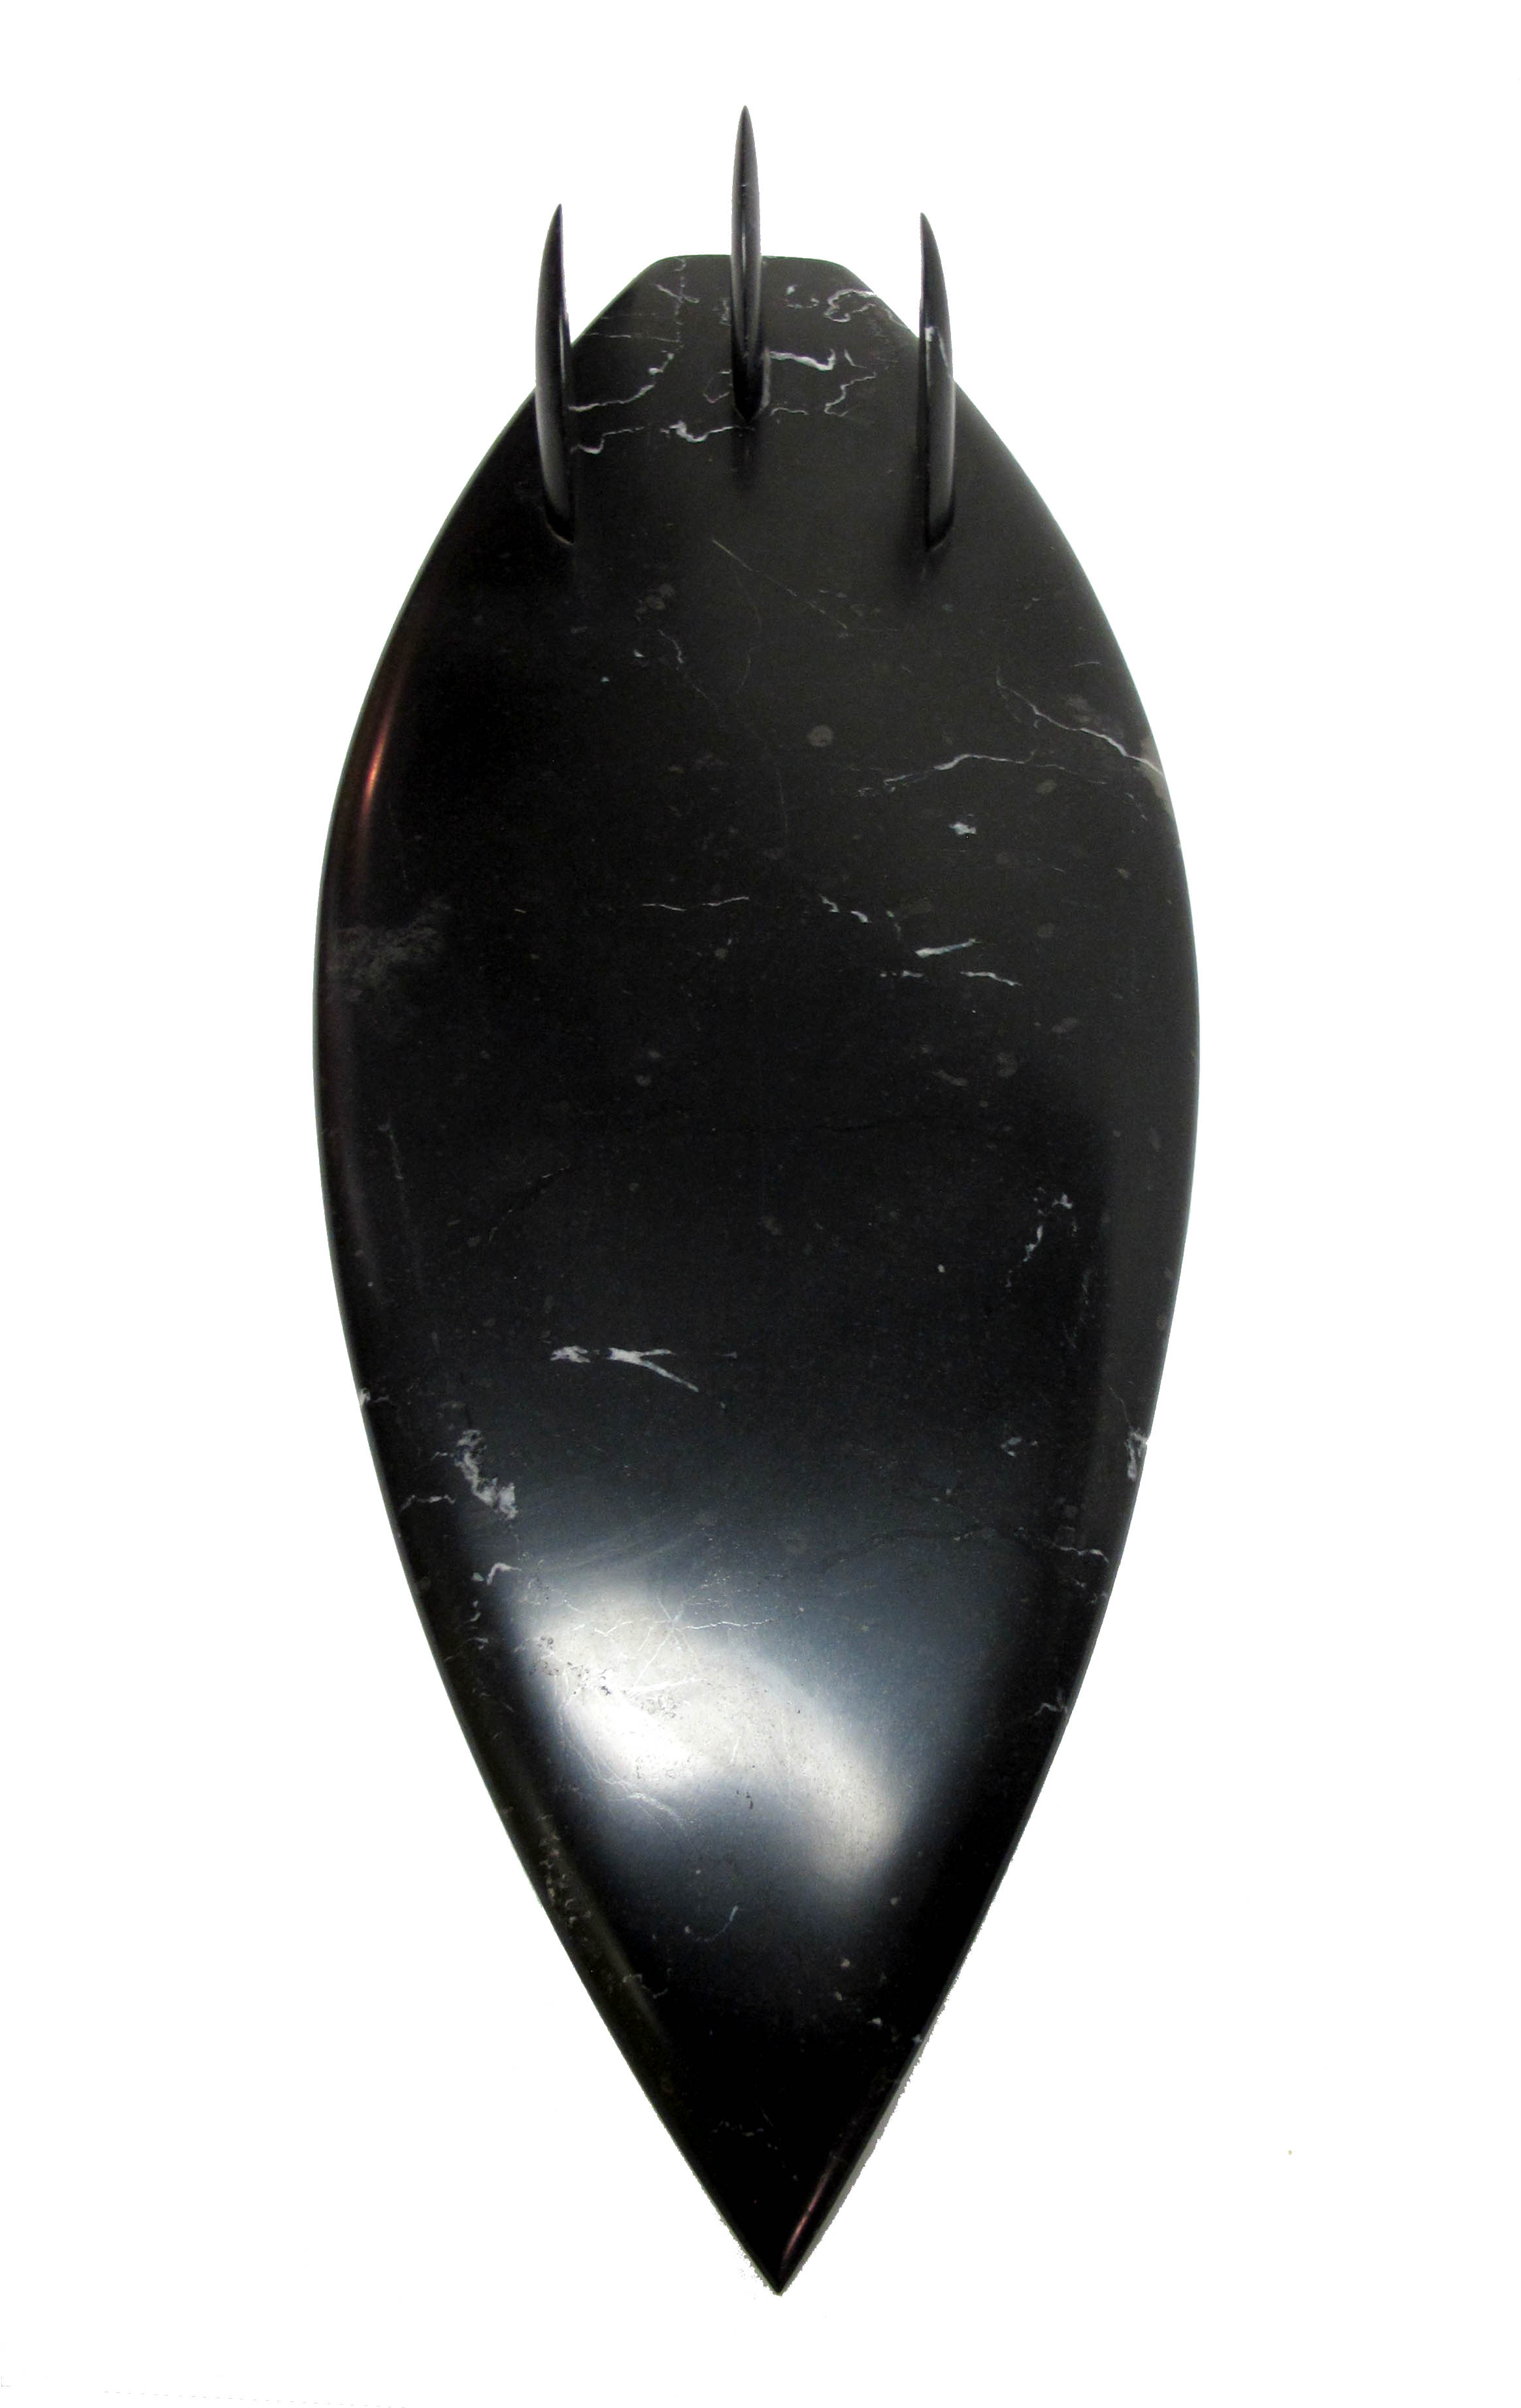 KL_Surfboard Medium_black marble 4.jpg